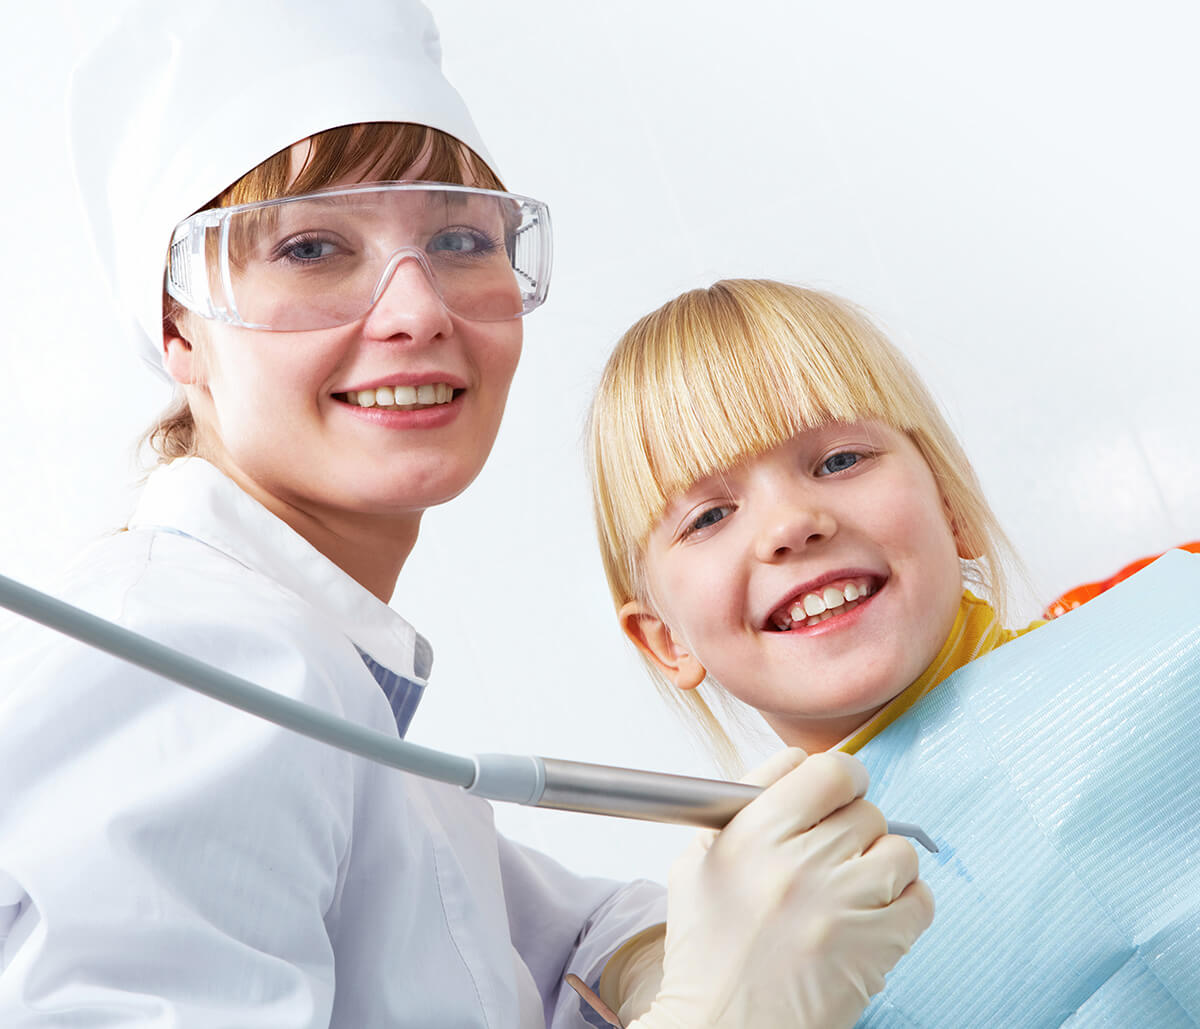 Dentist in Greensboro Area Provides Stainless Steel Crowns to Help Preserve Baby Teeth